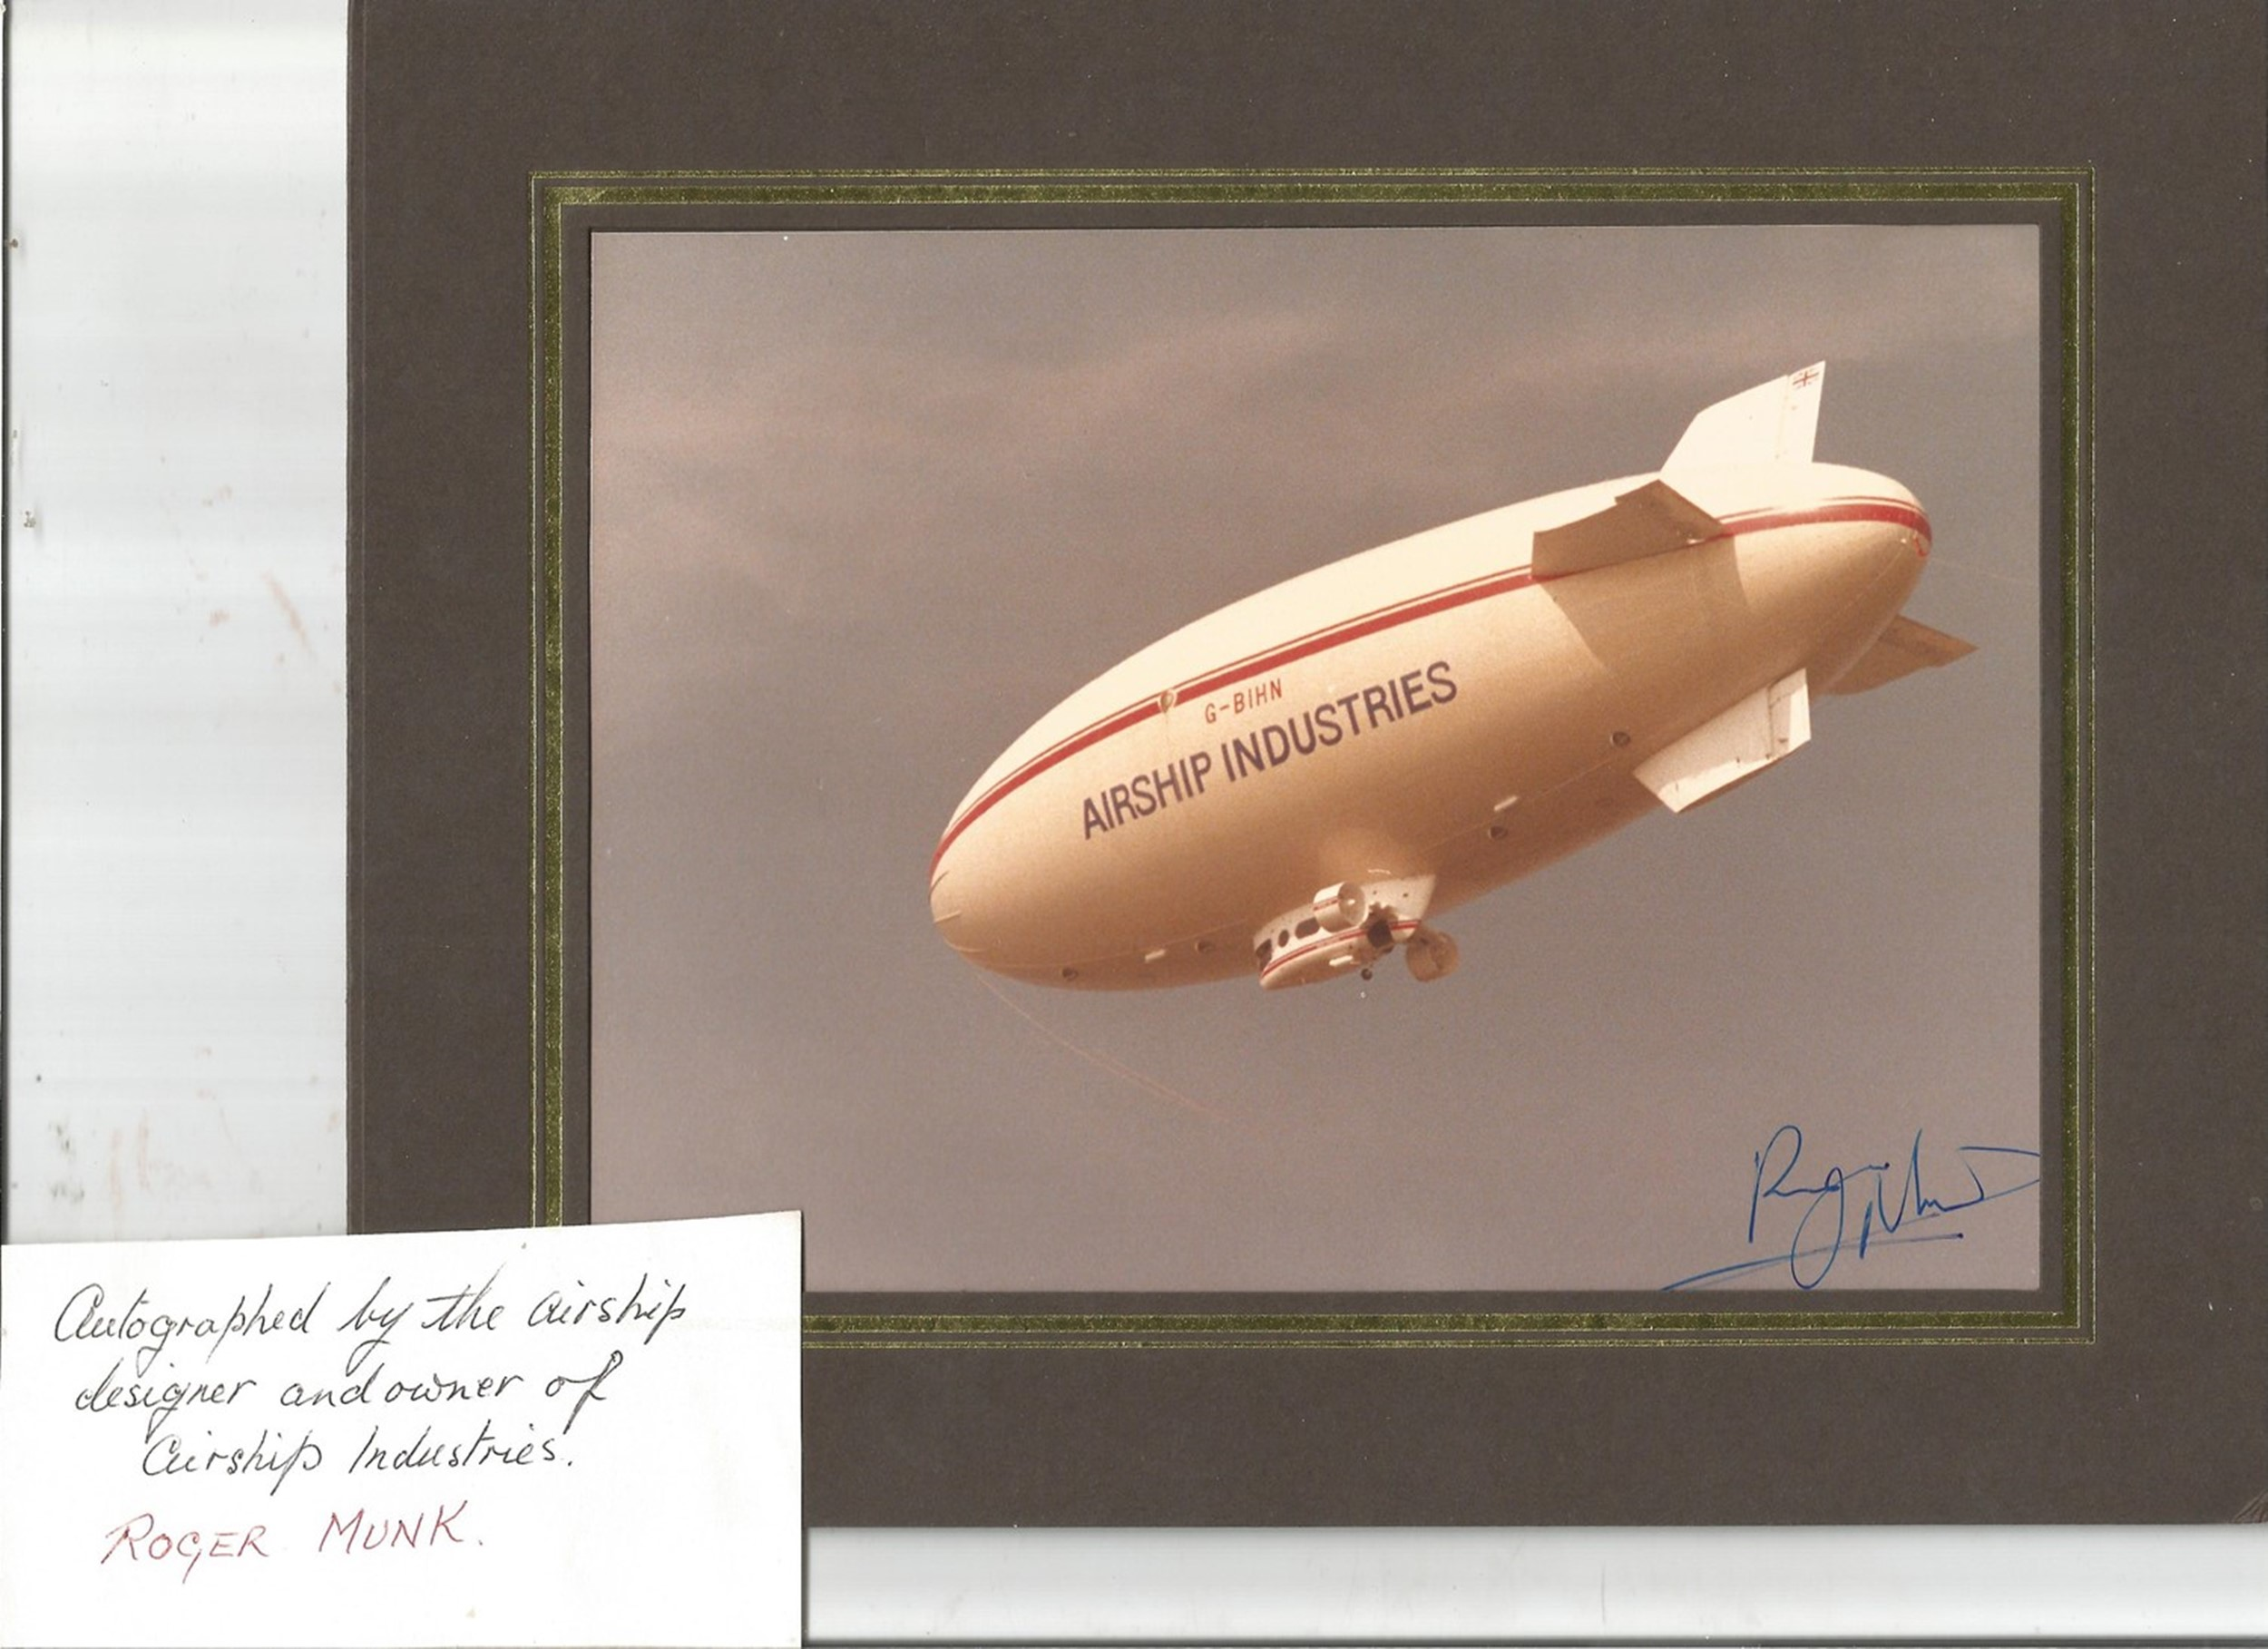 Historical Aviation Collection Comprising of Signed by Designer, Picture of Airship, Signed US - Image 3 of 3